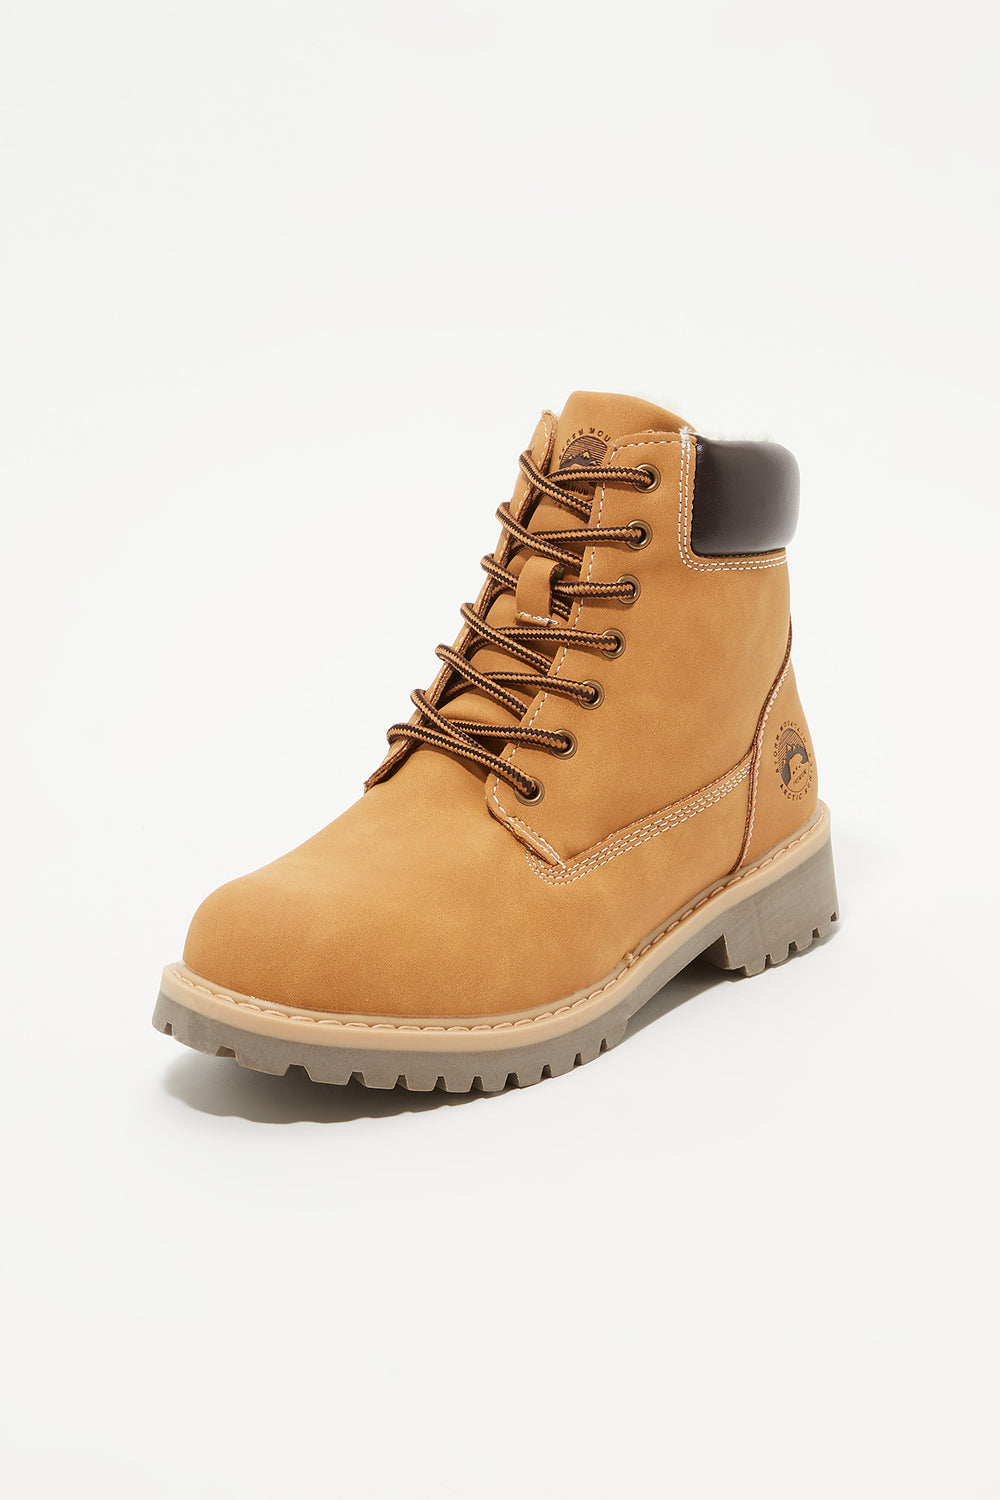 Storm Mountain Youth Faux-Fur Hiker Boots Tan